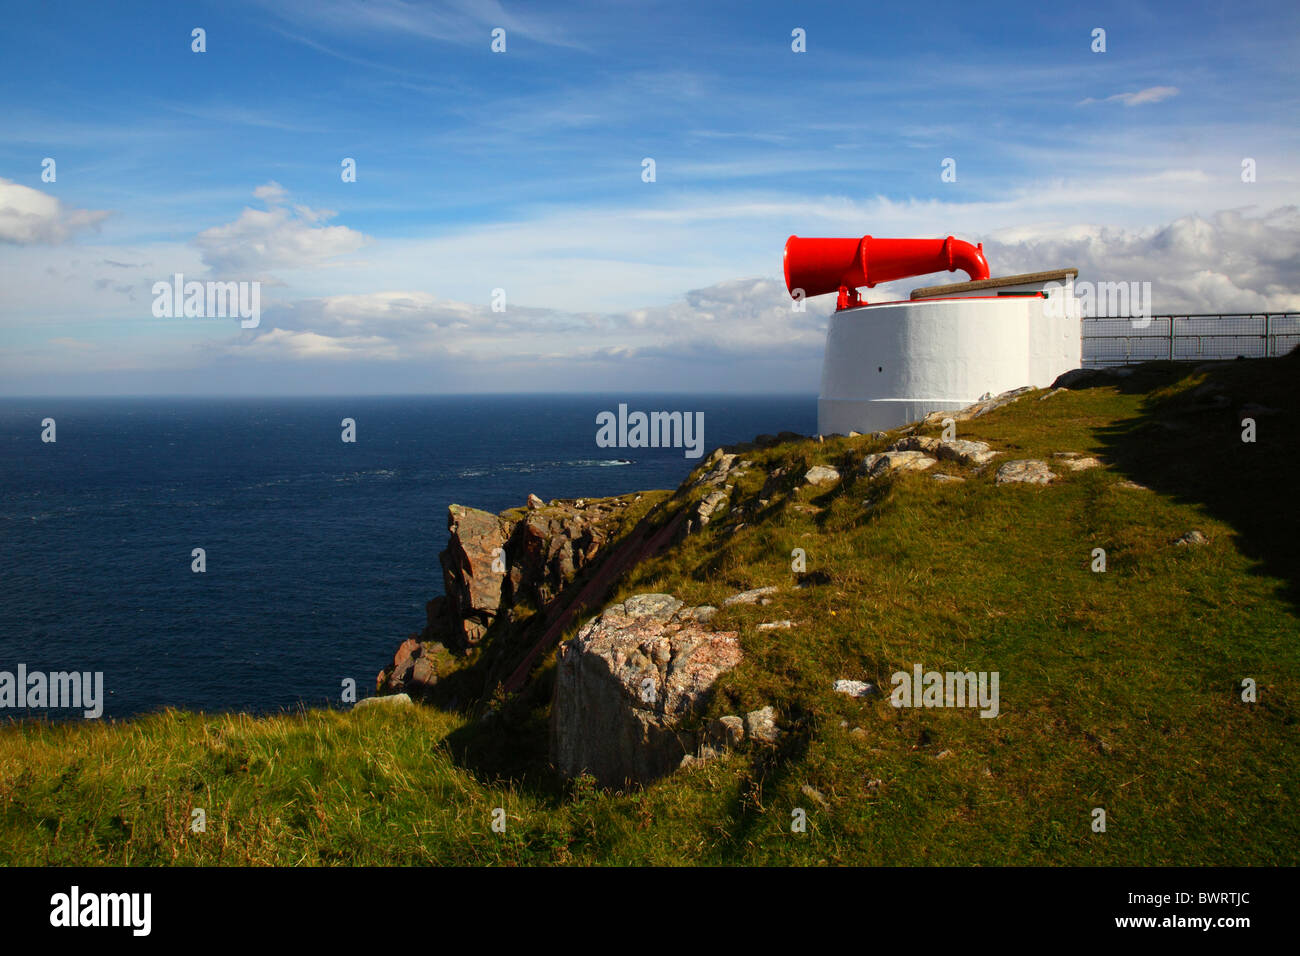 The most north westerly point of the British mainland.The Fog horn at Cape Wrath lighthouse,Durness,Highlands Scotland,UK. - Stock Image